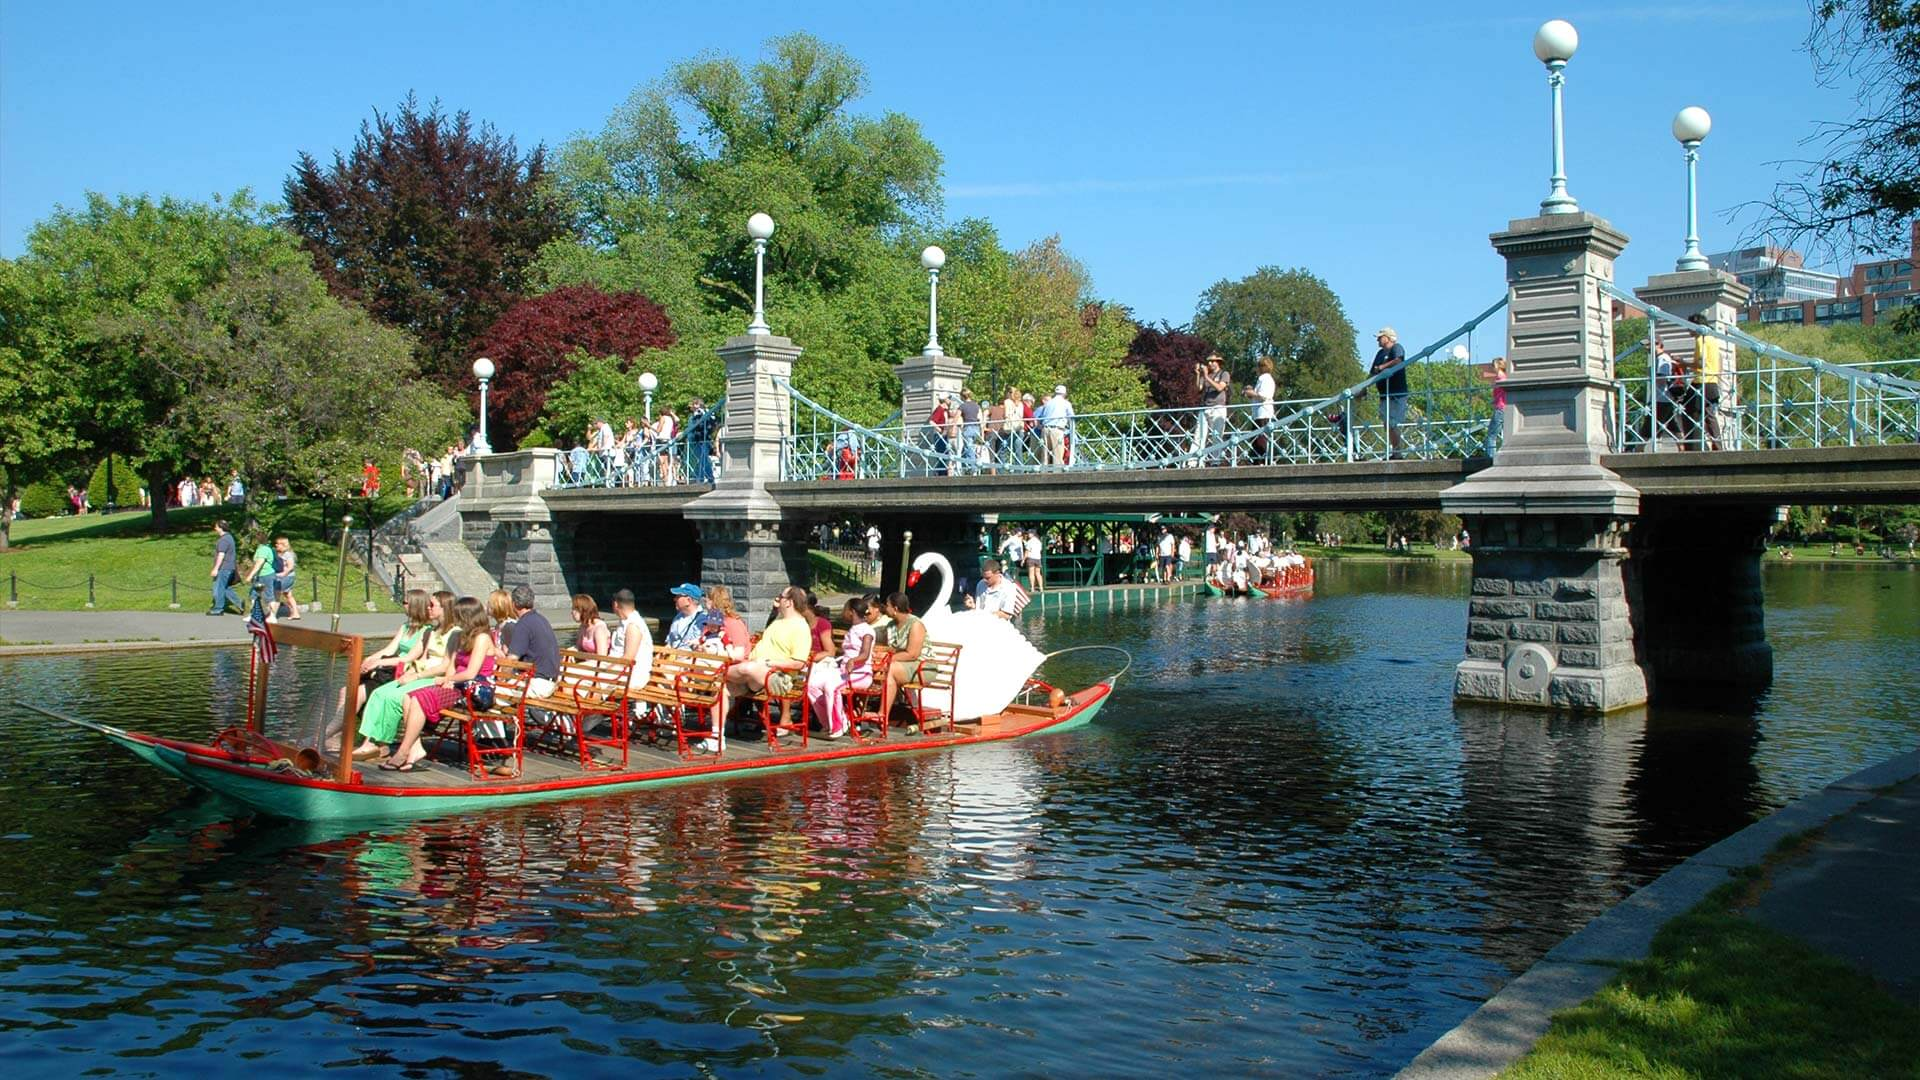 People enjoying the Swan Boats ride in Boston Public Garden on a sunny day